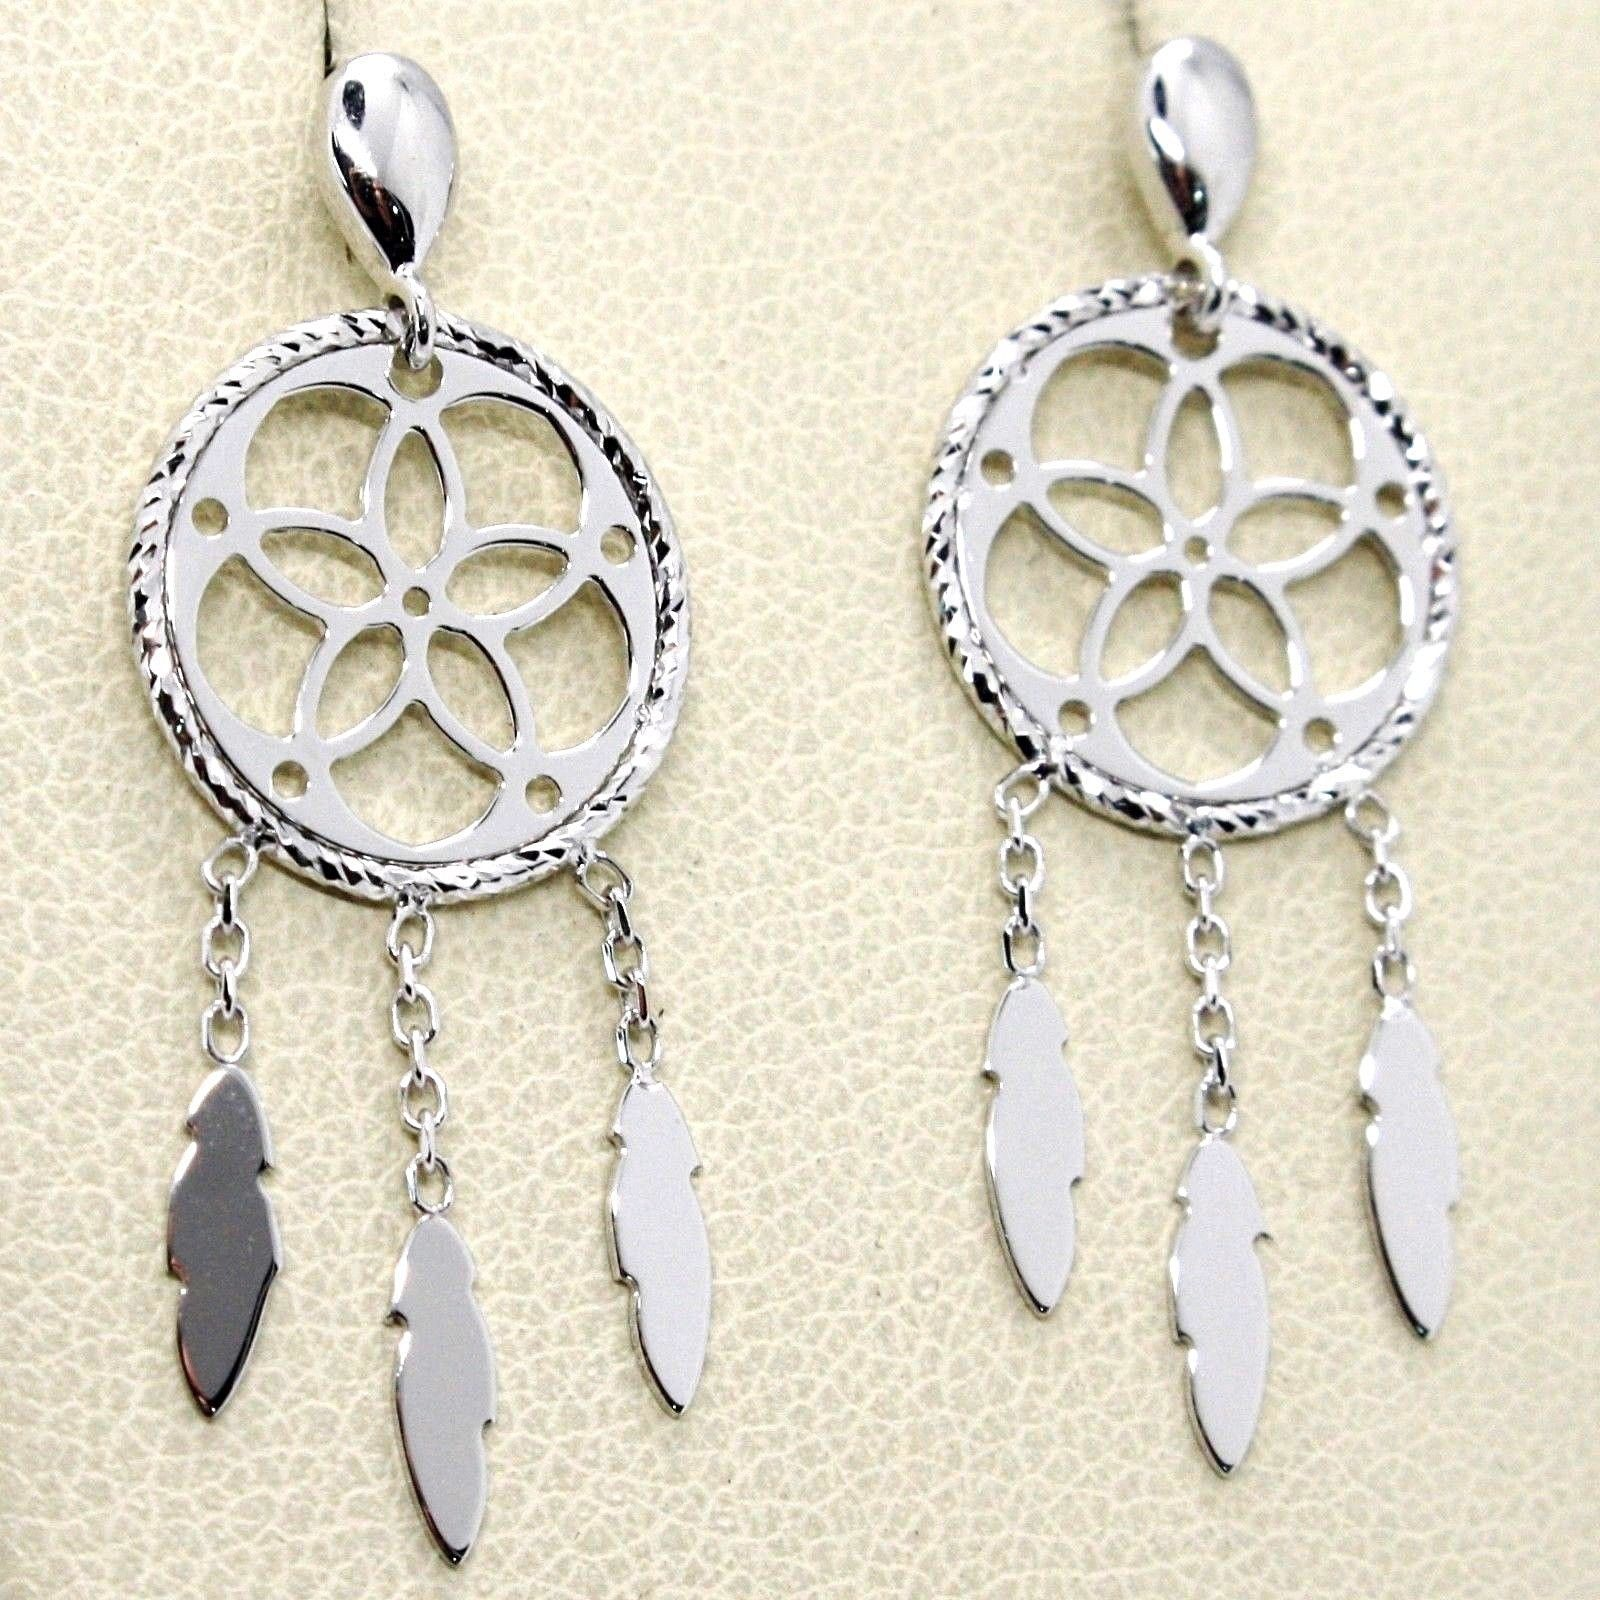 18K WHITE GOLD DREAMCATCHER PENDANT EARRINGS, FEATHER, MADE IN ITALY, 32 MM